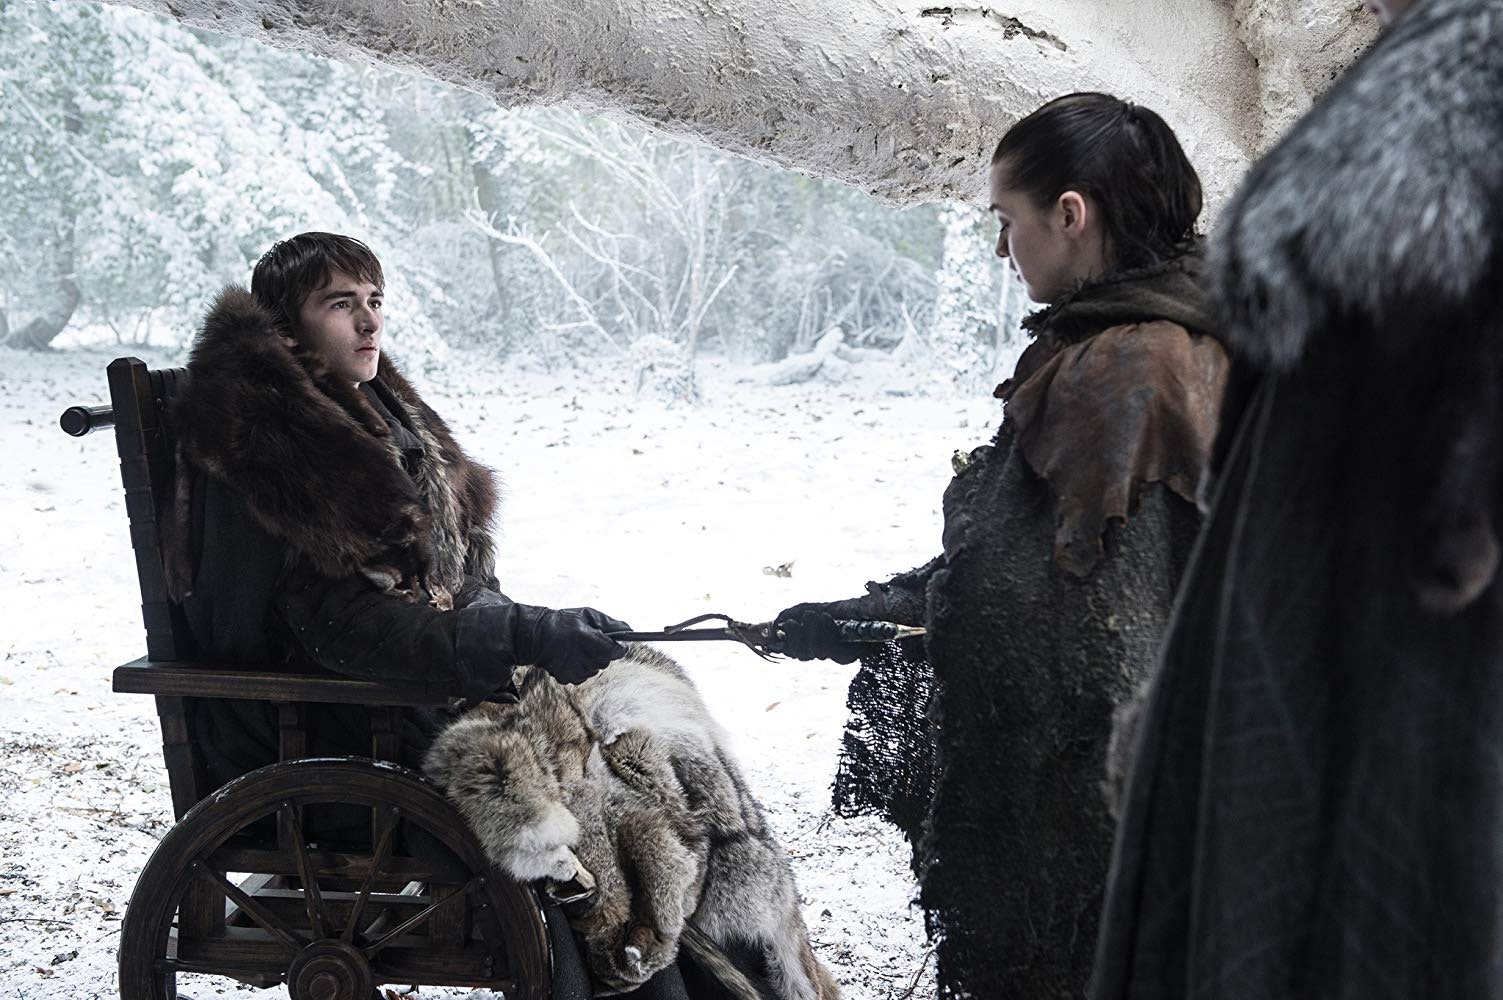 Isaac Hempstead Wright and Maisie Williams on 'Game of Thrones' Season 8